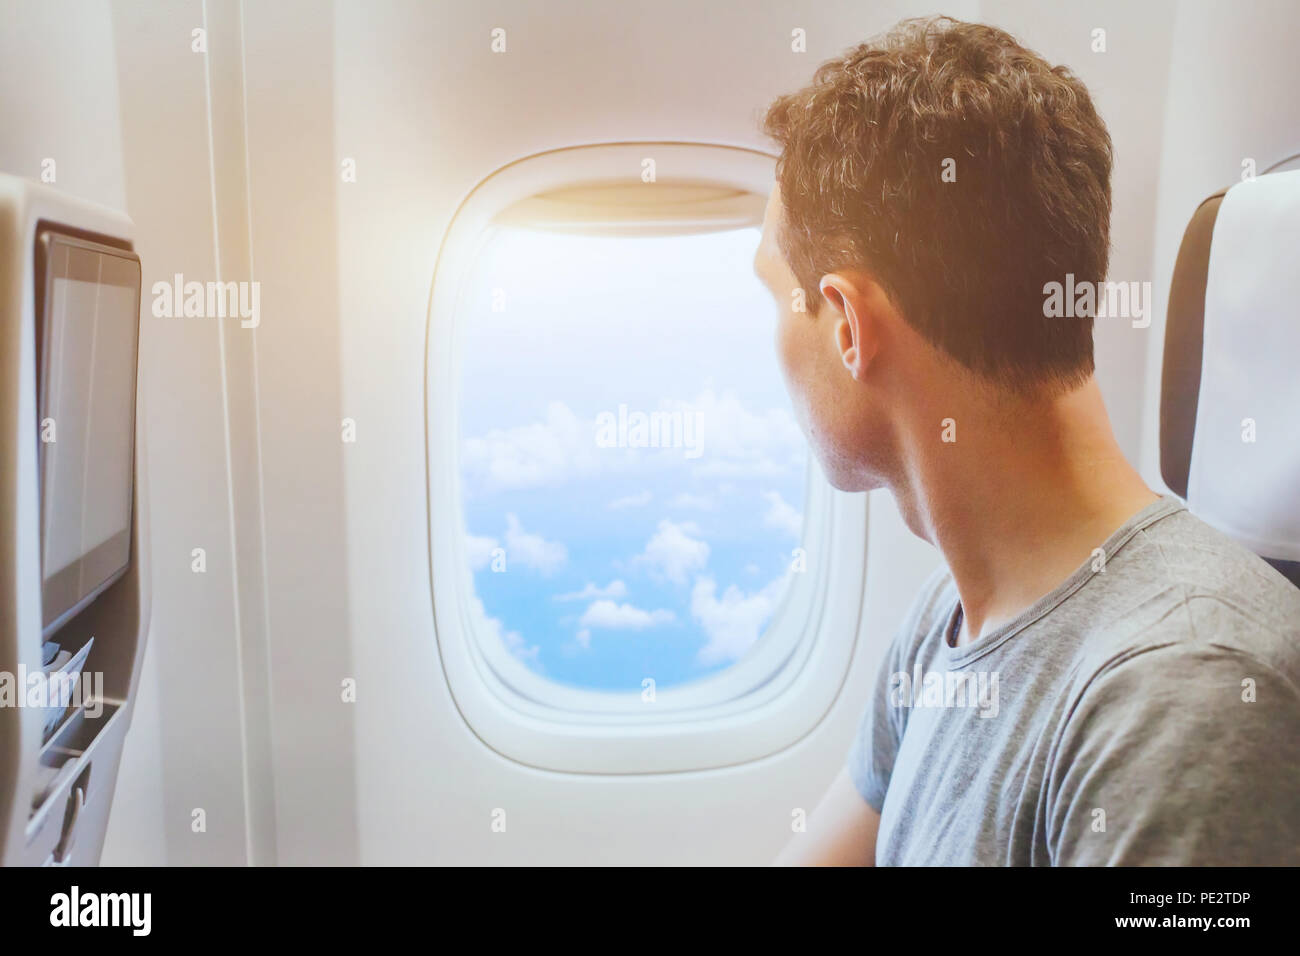 passenger of airplane looking at window, international travel, happy man tourist enjoy flight in comfortable air plane - Stock Image